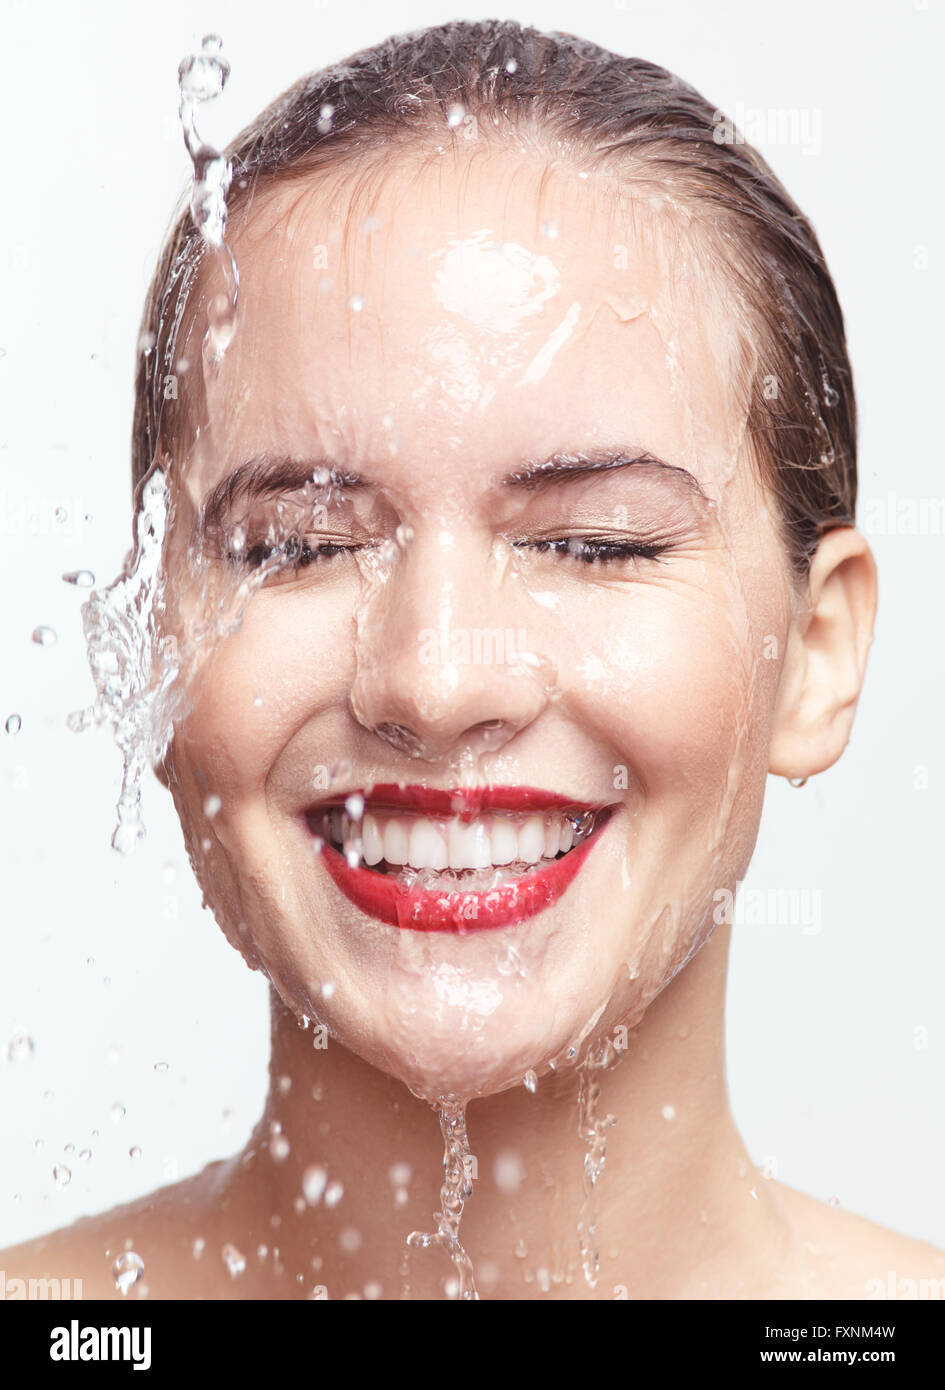 Smiling woman with water dripping over her face - Stock Image